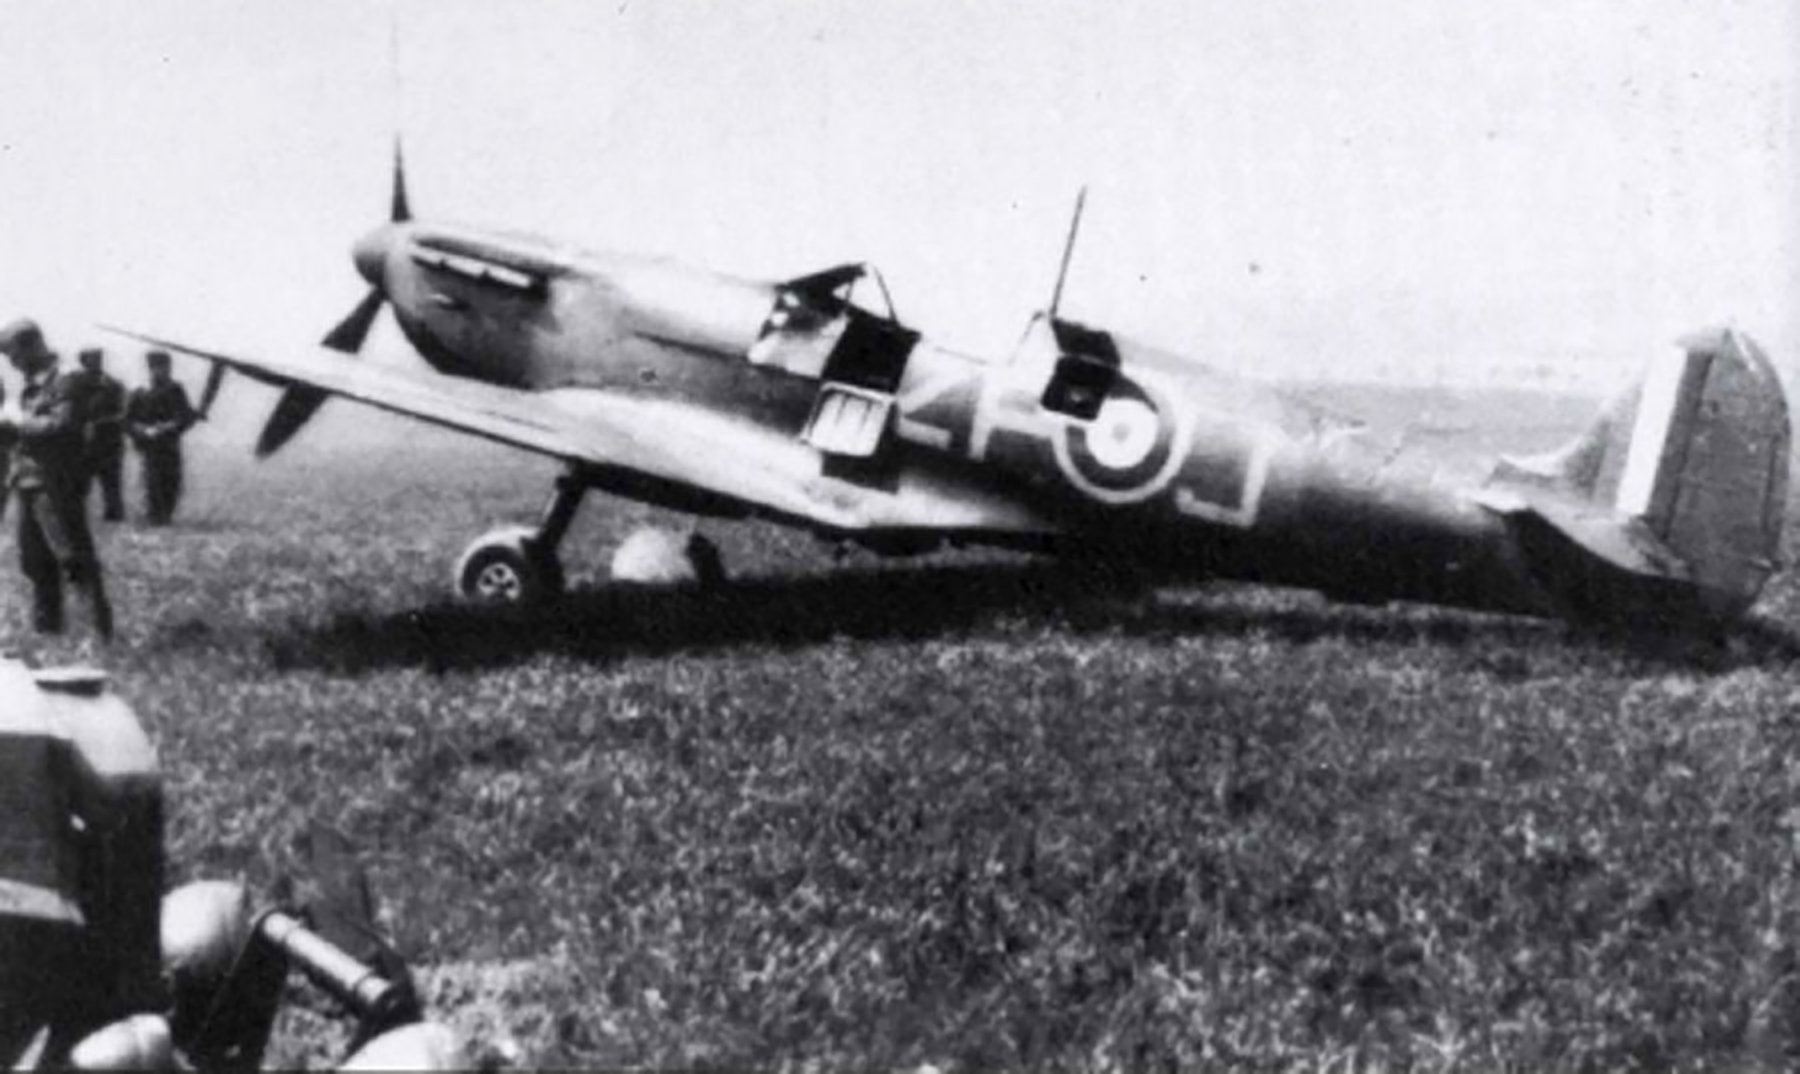 Spitfire MkIa RAF 74Sqn ZPJ abandoned intact Calais Marck Airfield 1940 01